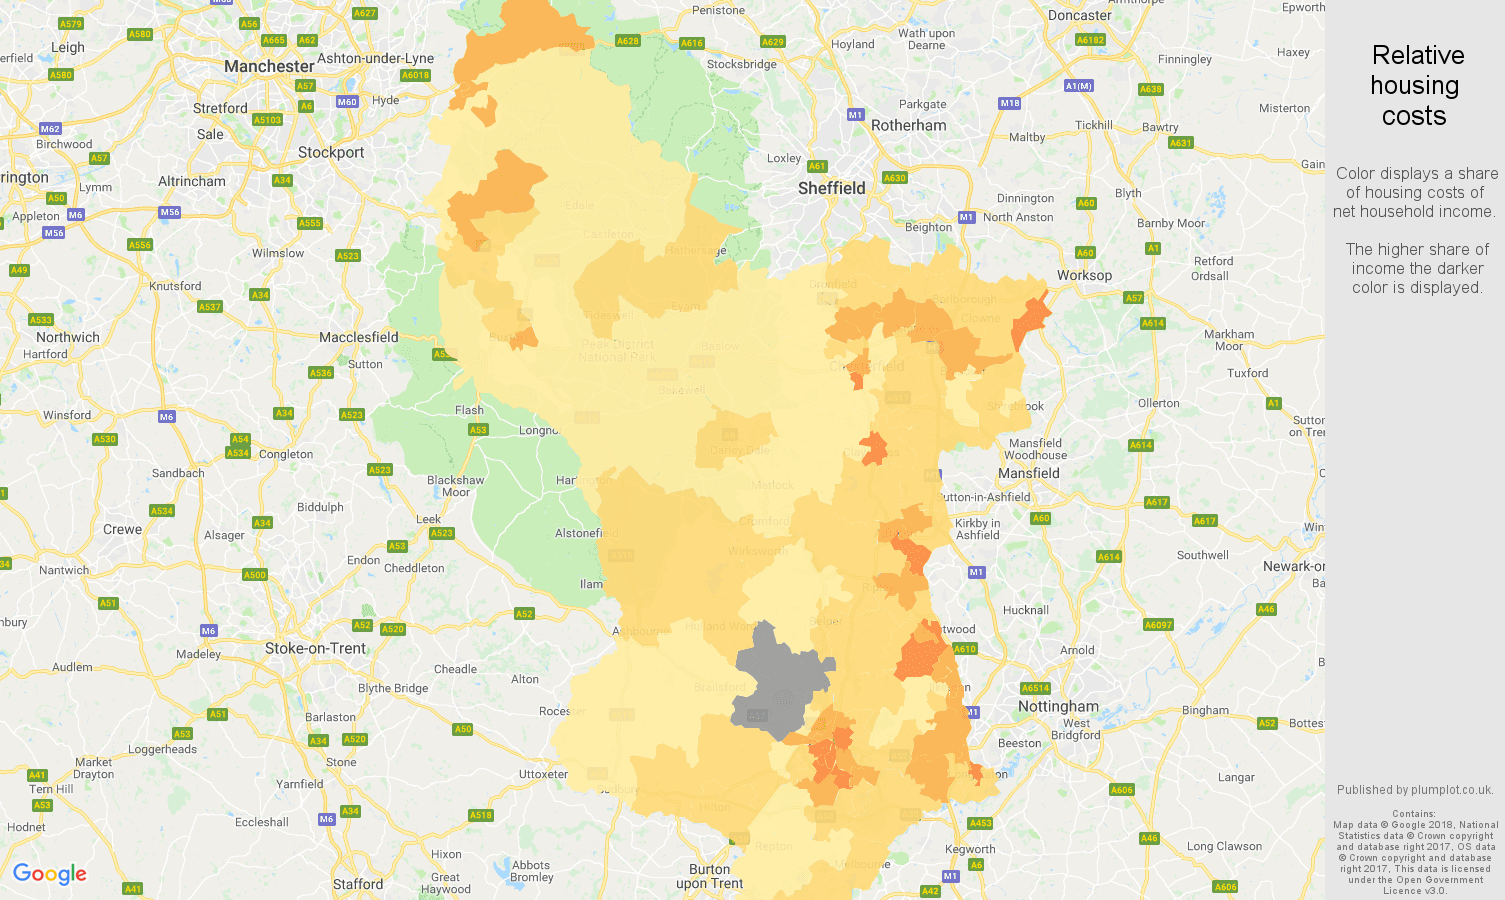 Derbyshire relative housing costs map